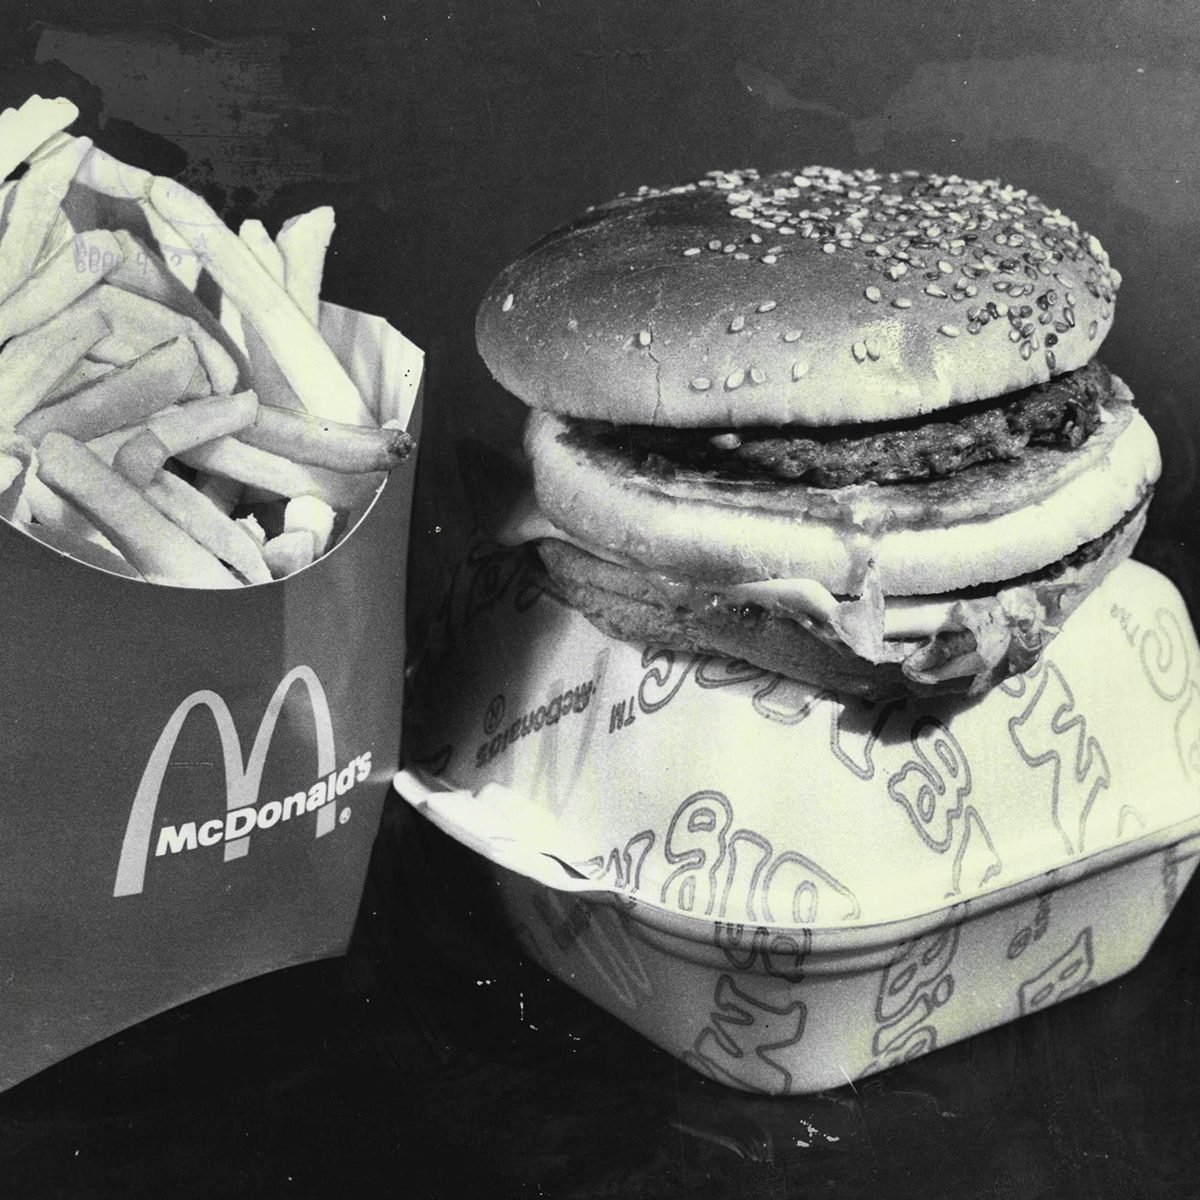 Mcdonald's Meal Pics Of Fast Food Items For Fast Food Story.mcdonalds Chips And Big Mac.one Big Mac Hamburger, One Large Serving Trench Fries. Total Weigh, 304 Grams. Cost, $1.50.good Points: Protein Energy Content Close To Ideal, High Vitamin C.bad Po